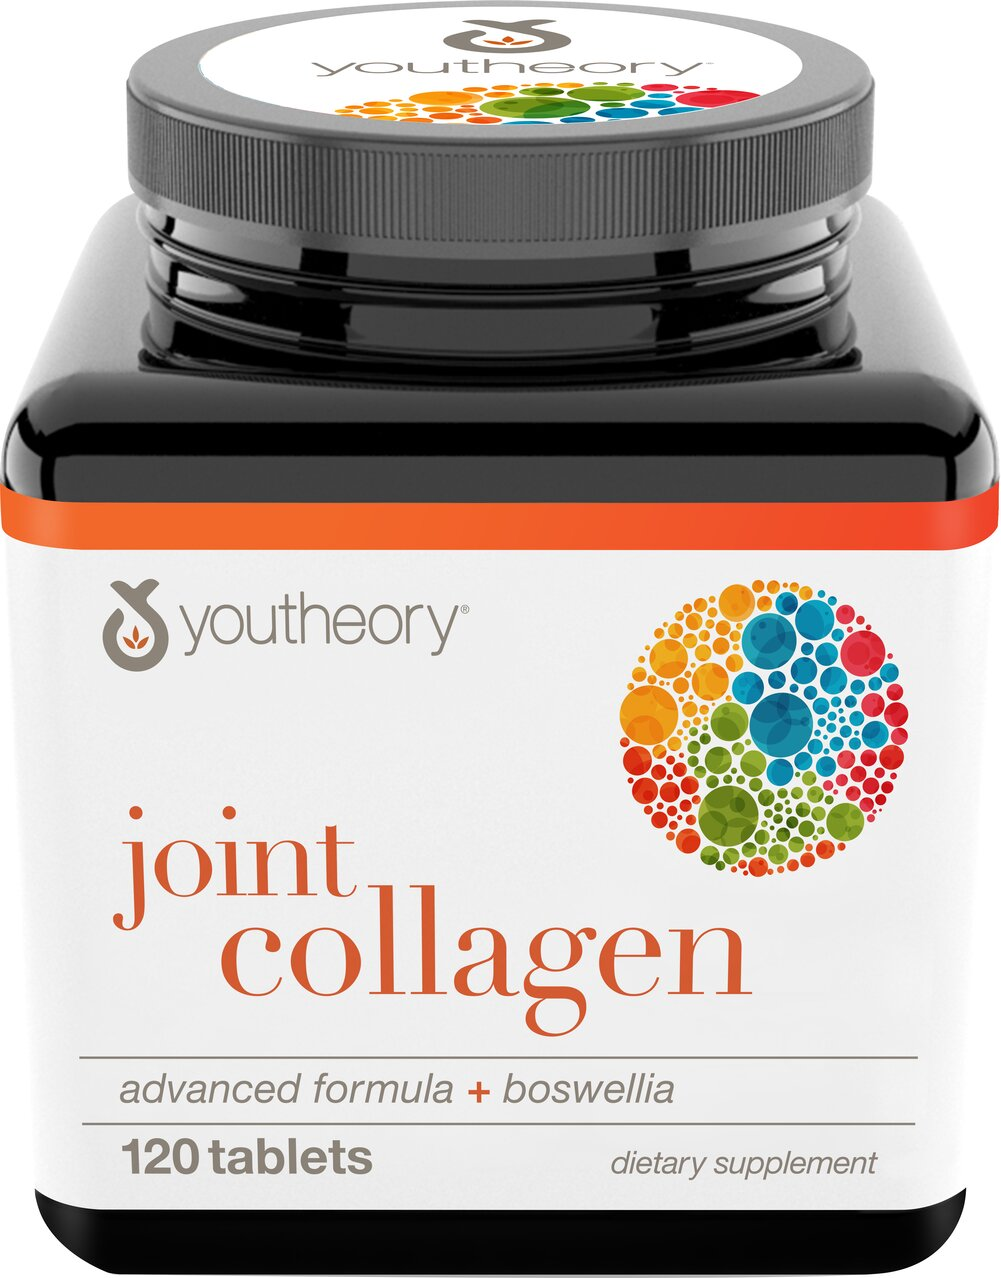 Youtheory collagen benefits